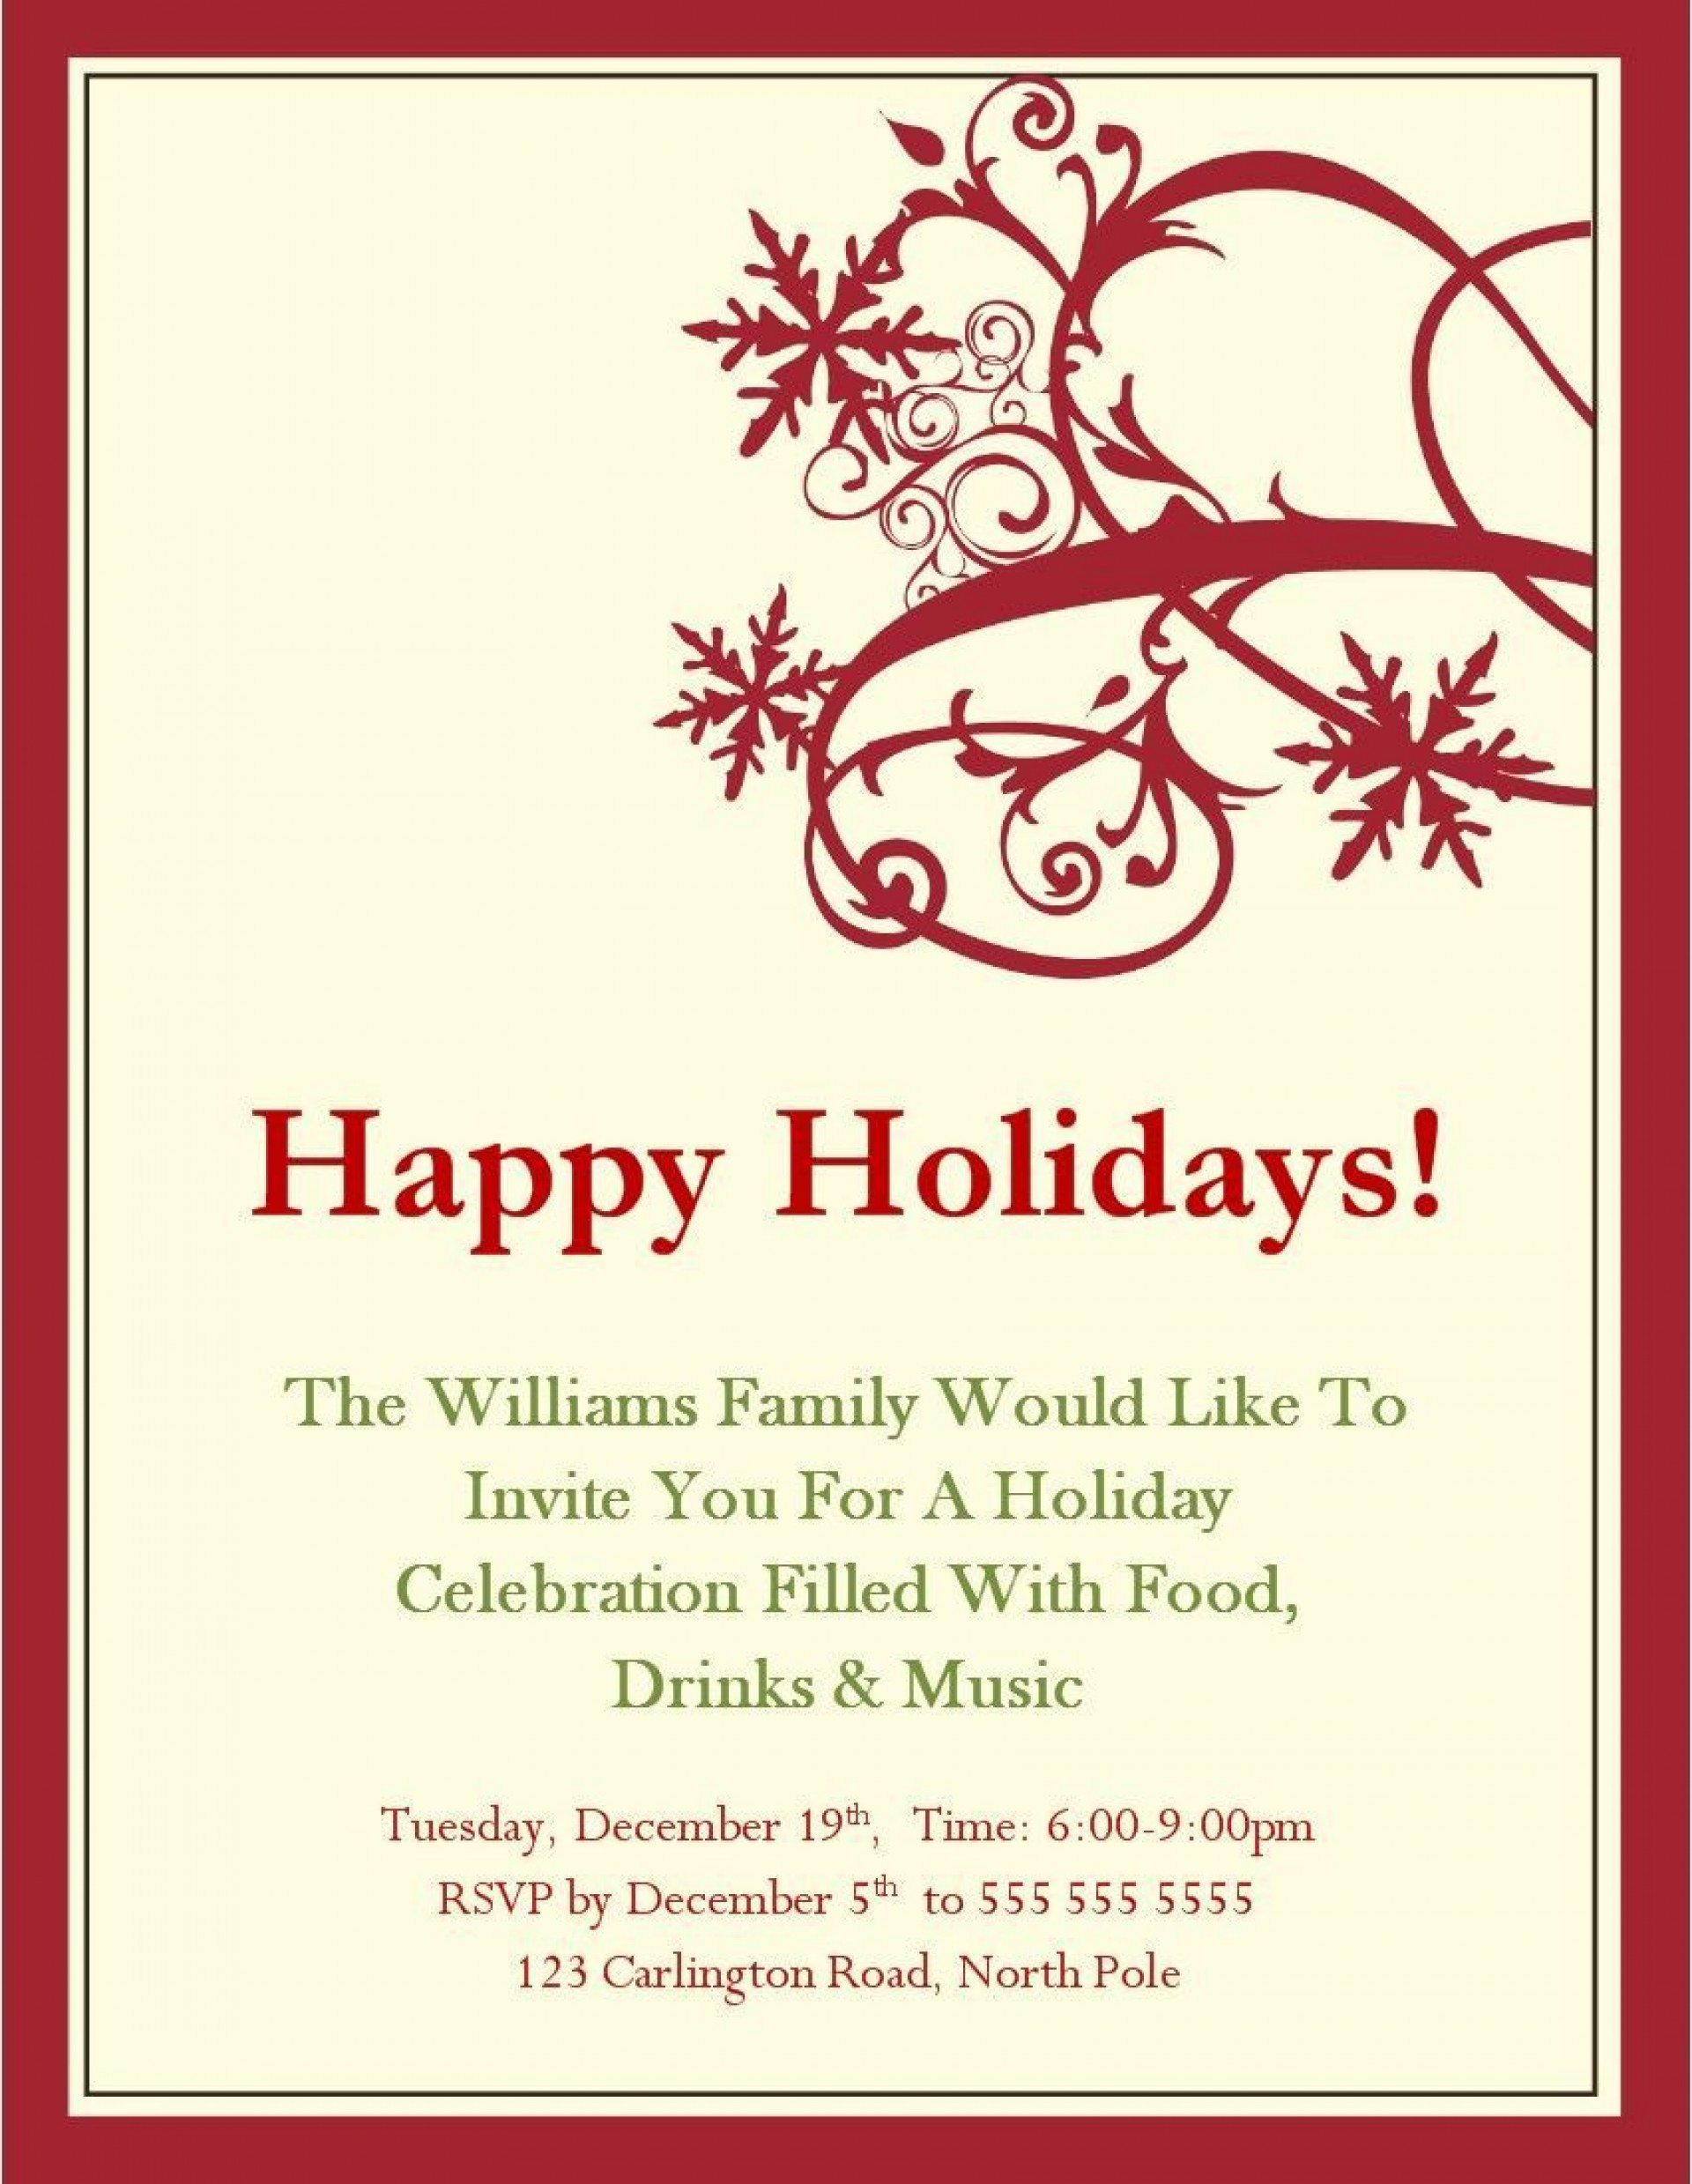 003 Remarkable Free Online Holiday Invitation Template High Def  Templates1920